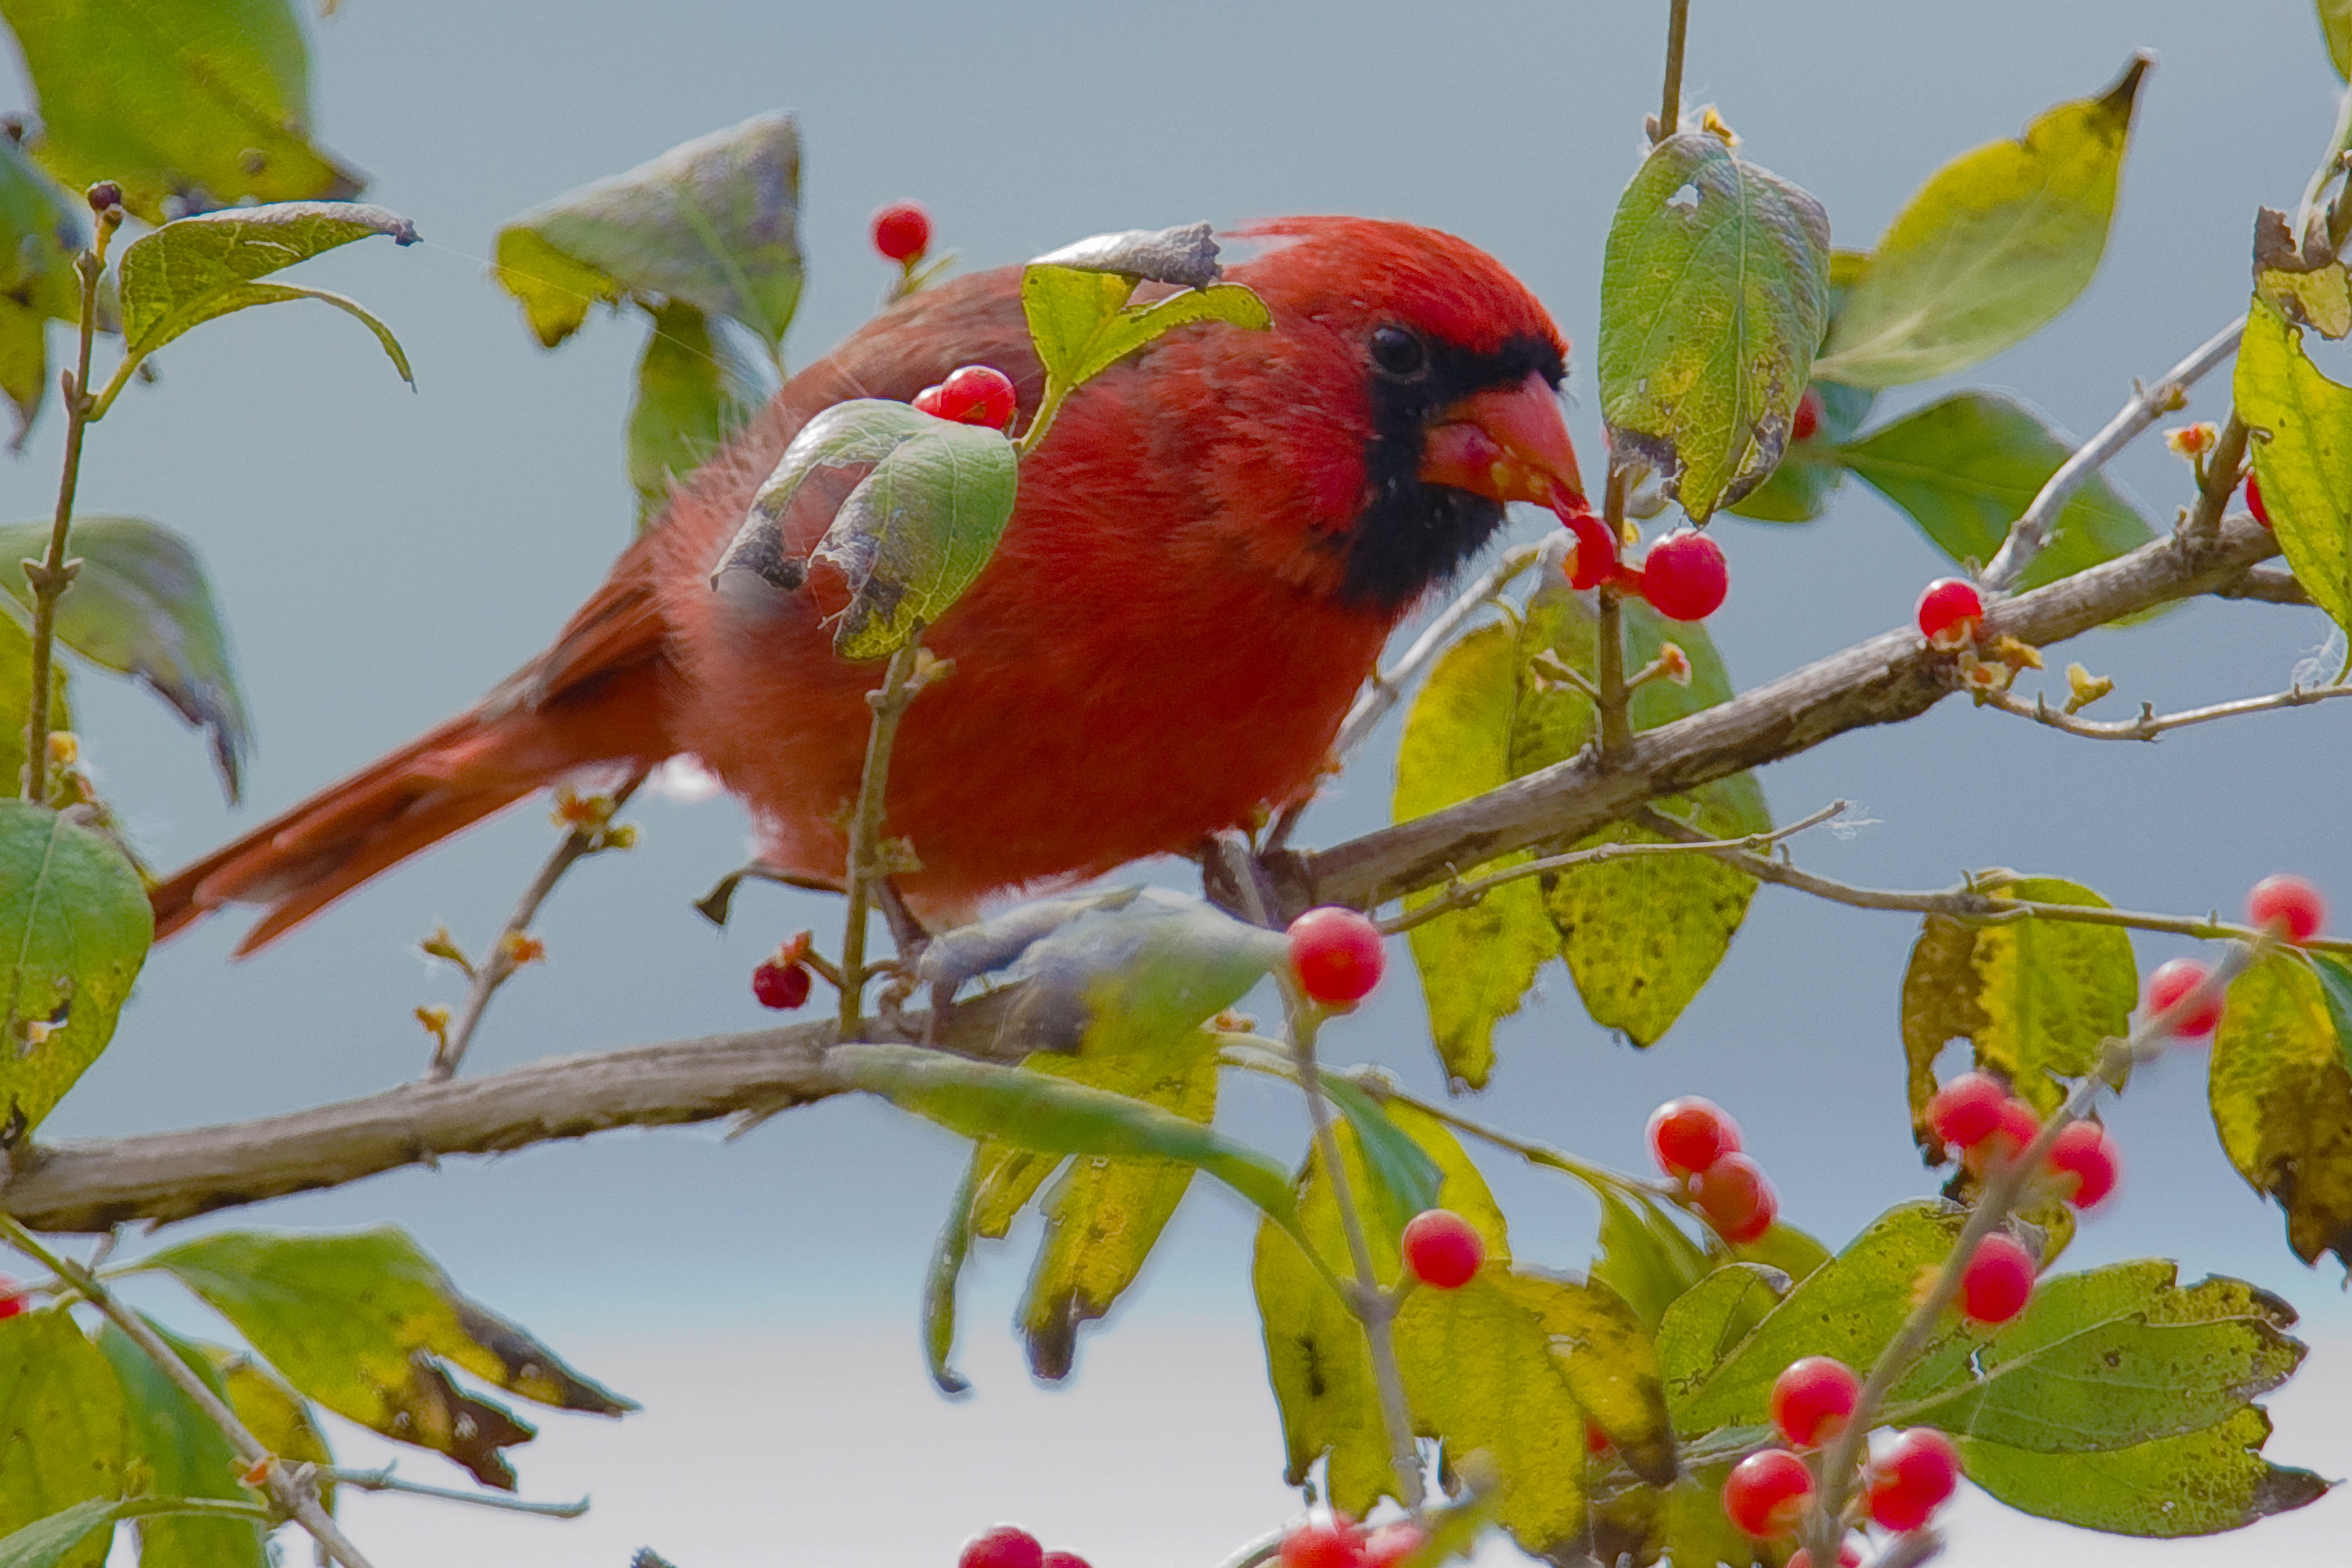 animals birds photography berry leaves nature wildlife trees